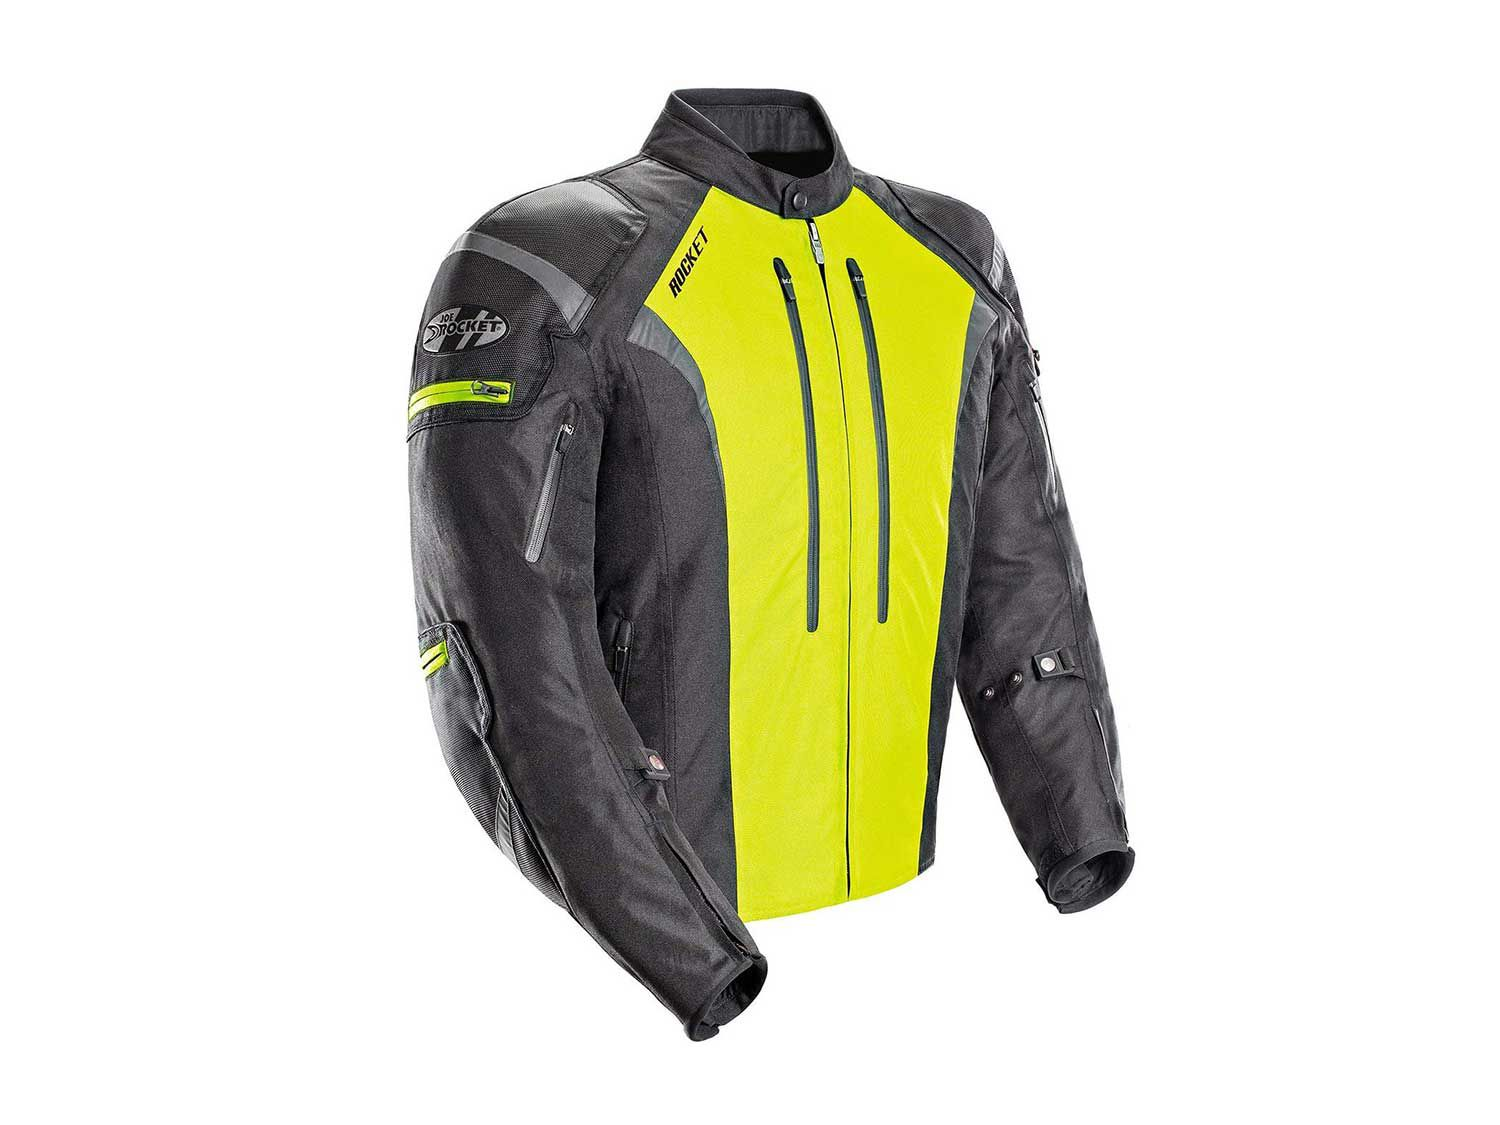 Get the best of both worlds with high visibility and waterproofing.